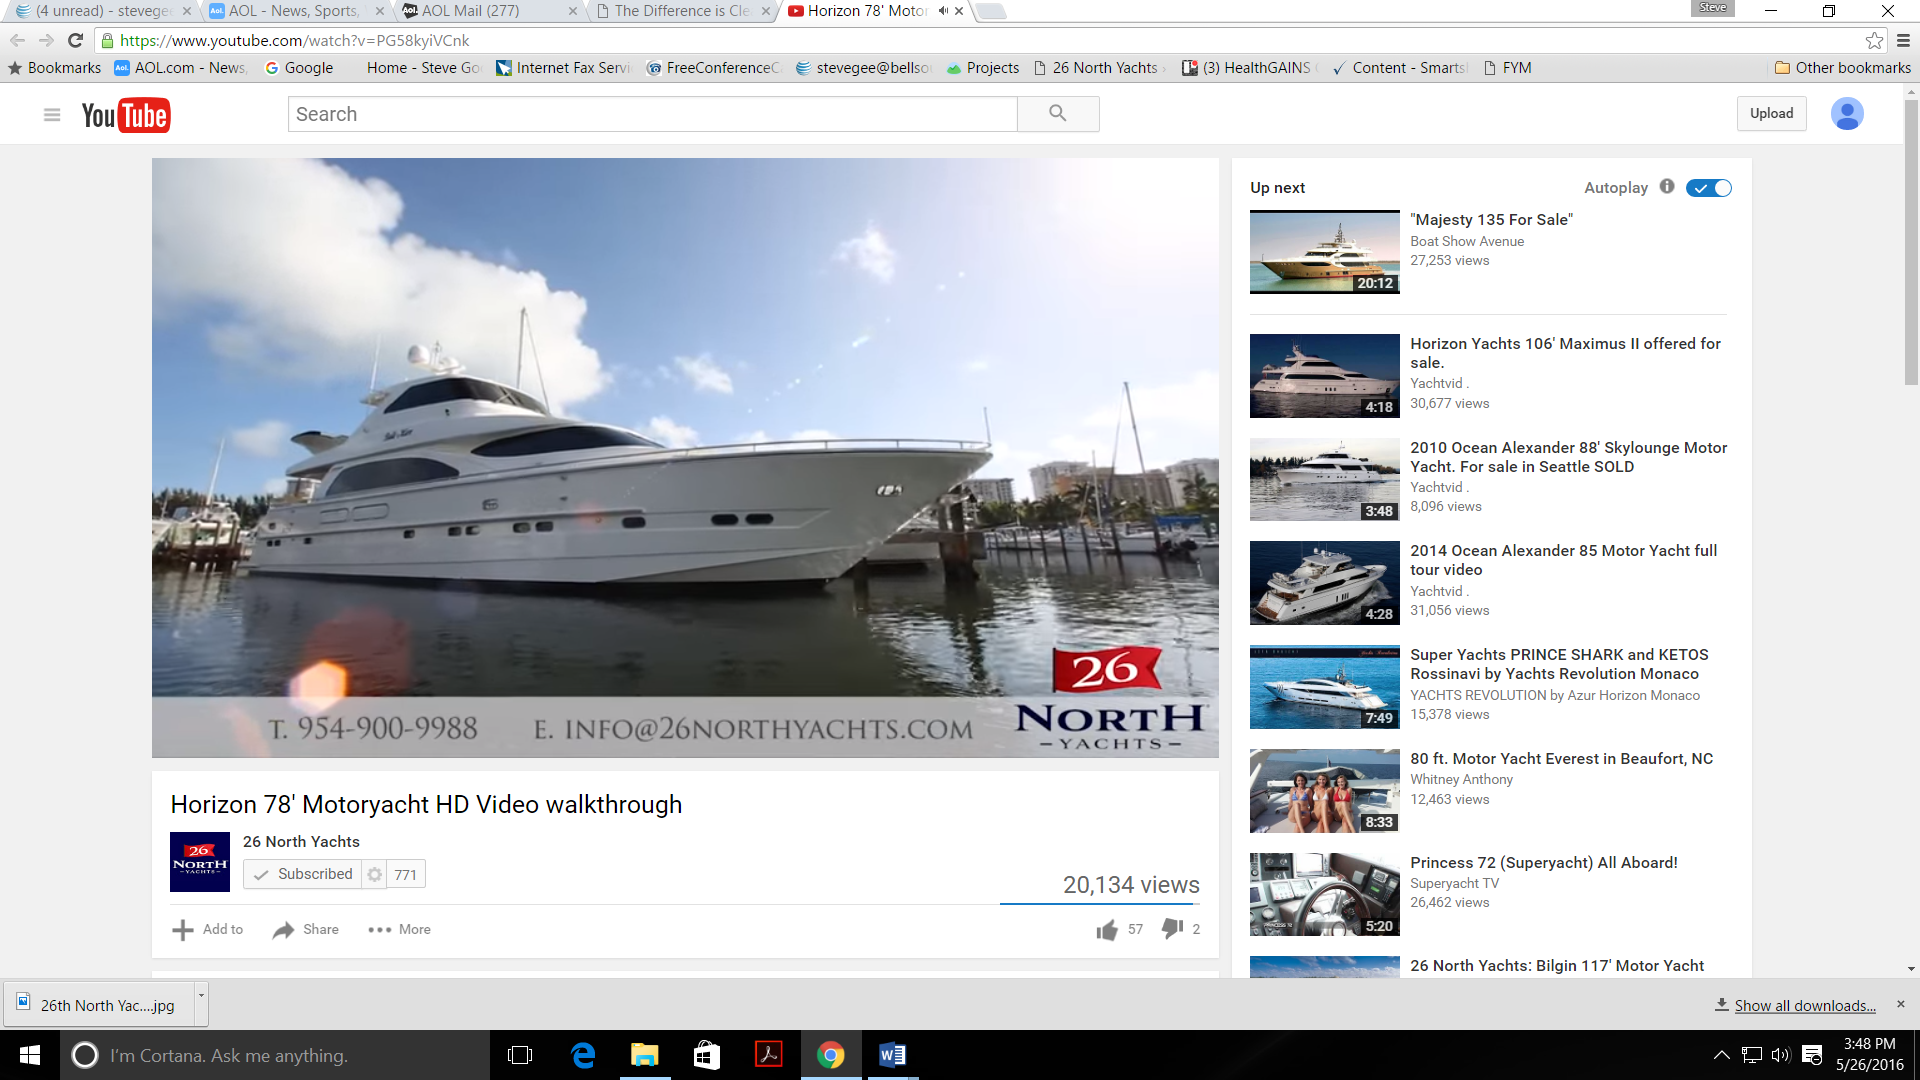 26 North Yachts on YouTube